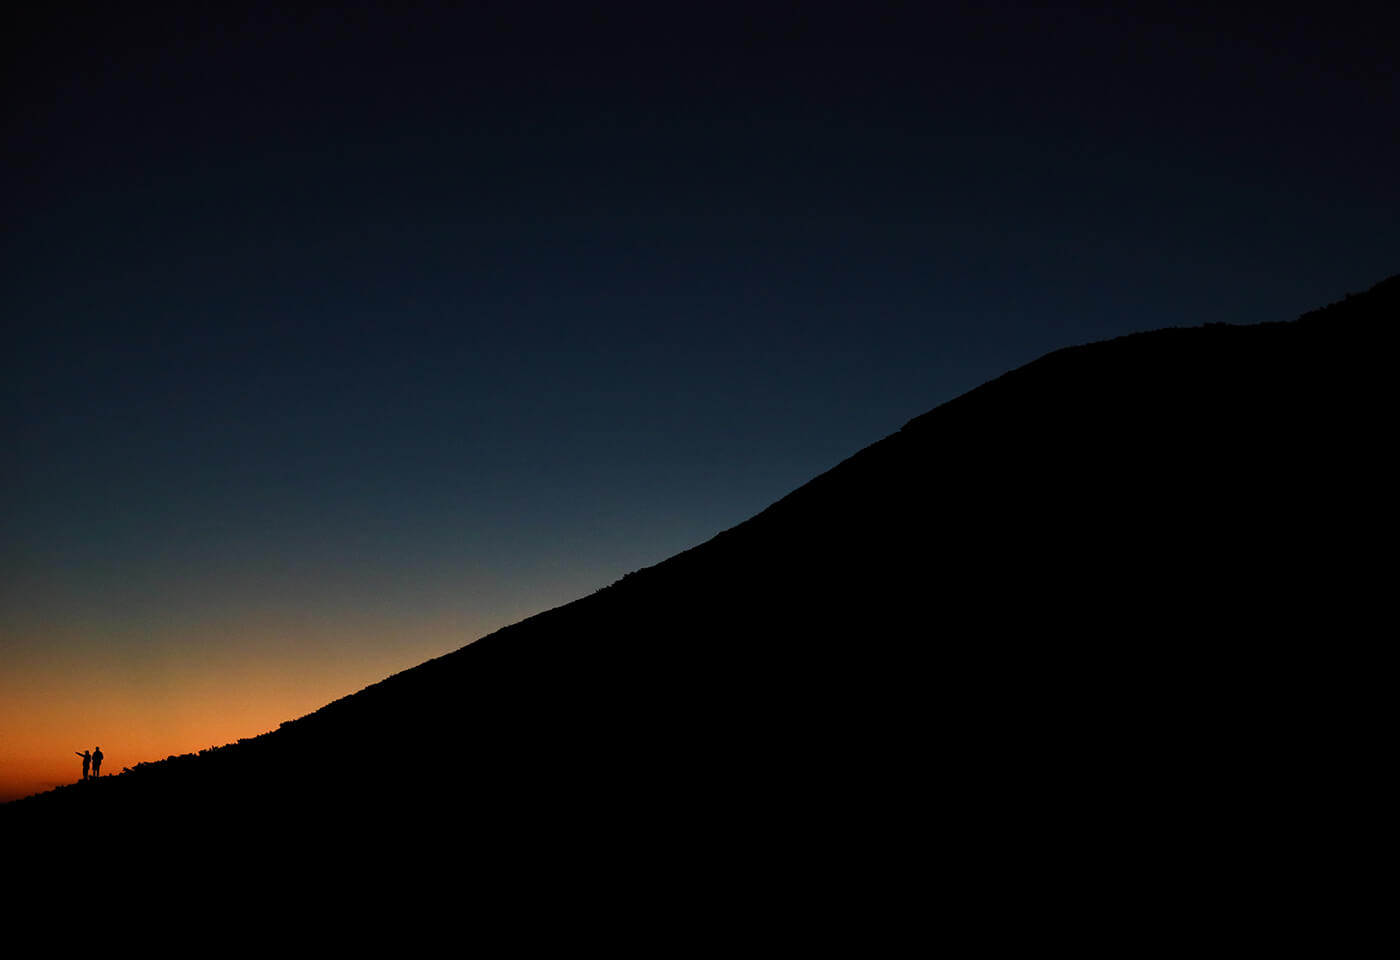 Photograph of hill at sunset taken using RF 28-70mm f/2L USM